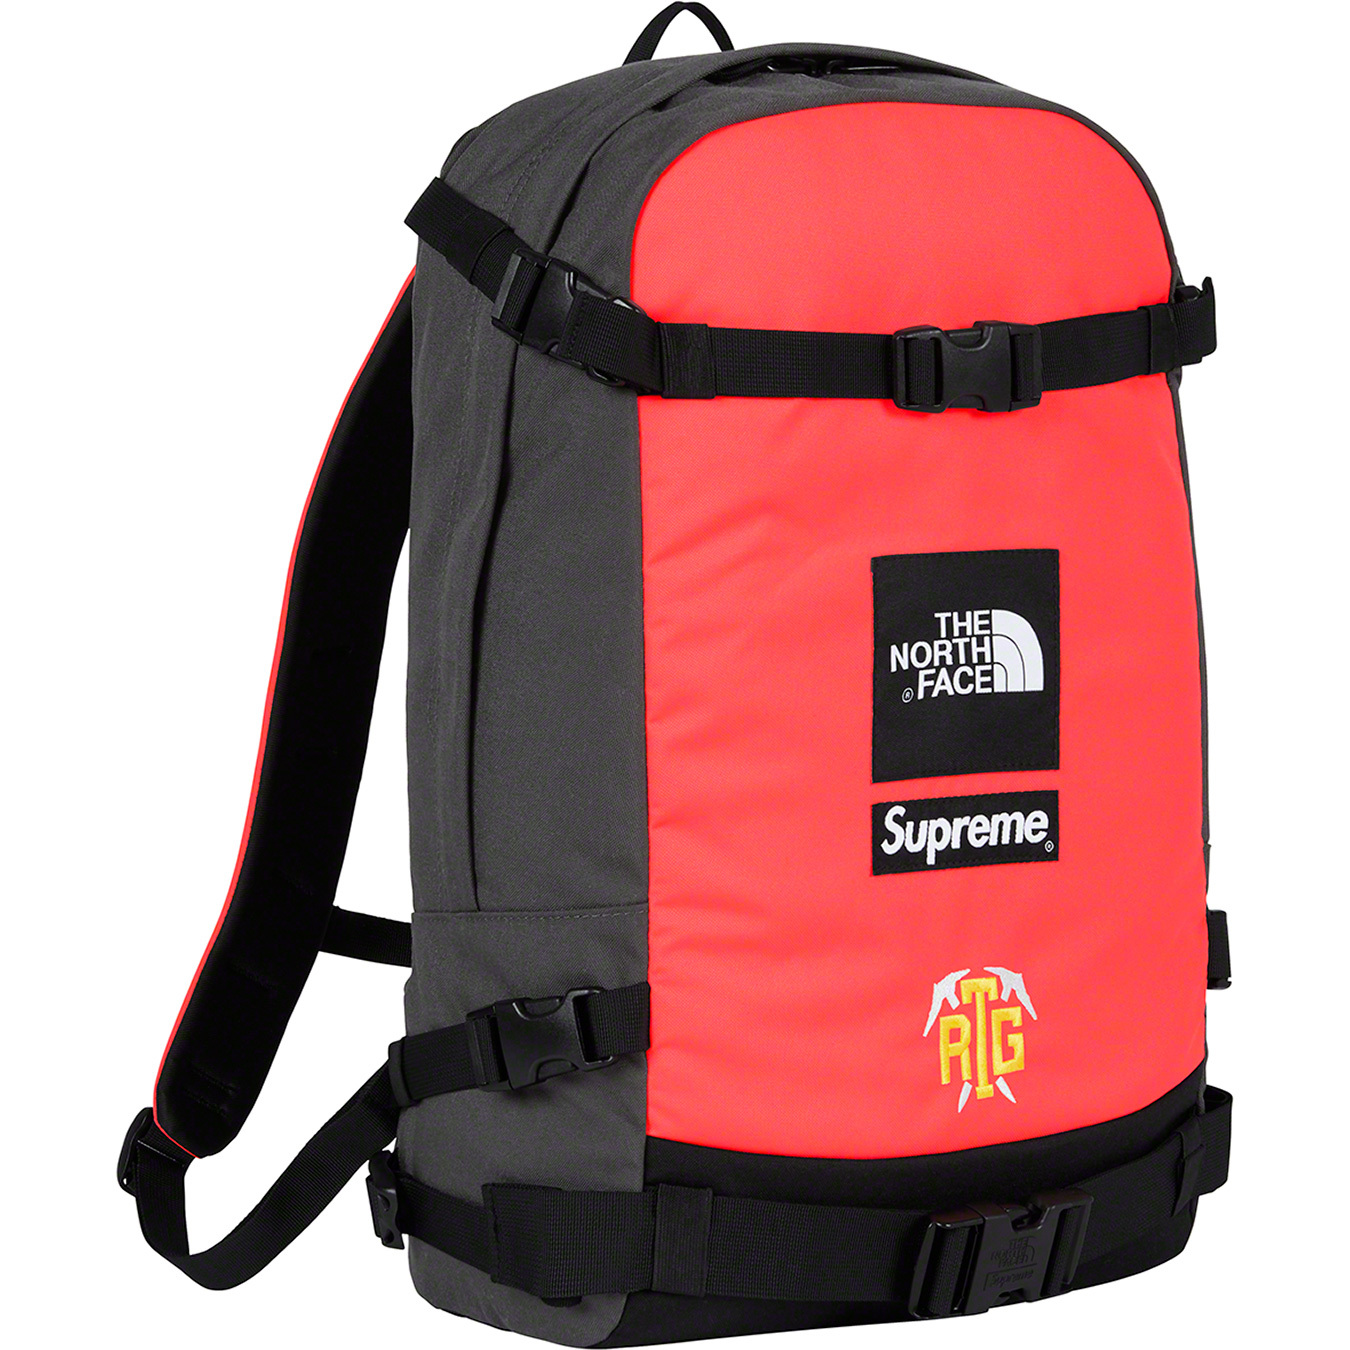 supreme-the-north-face-rtg-series-20ss-release-20200314-week3